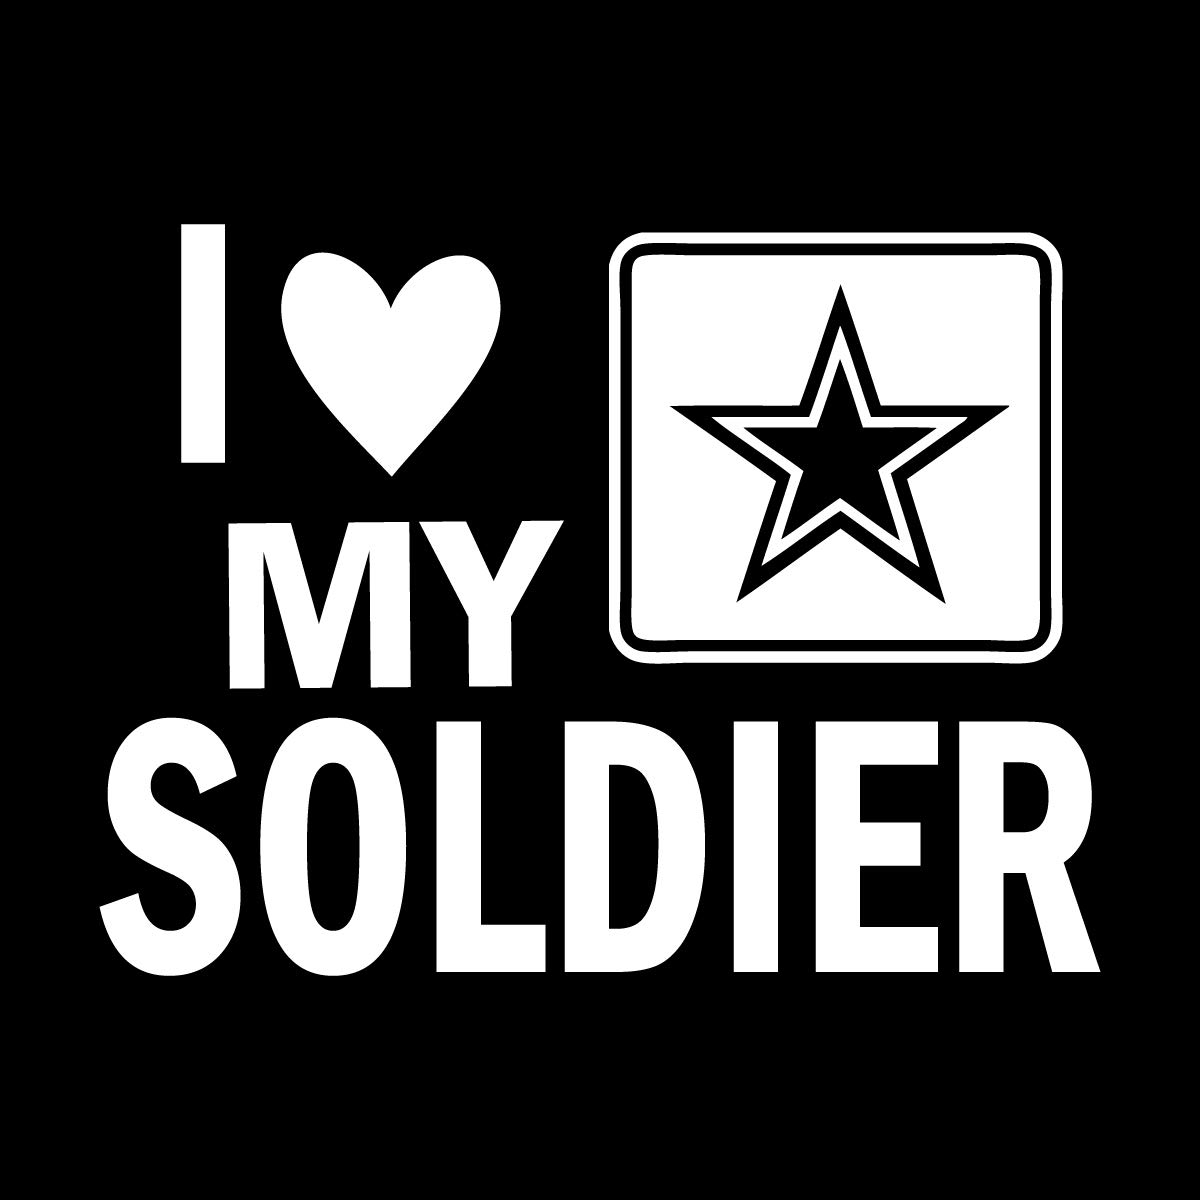 One 5.5 Inch White Decal More Shiz I Love My Army Soldier Vinyl Decal Sticker Car Truck Van SUV Window Wall Cup Laptop MKS0686